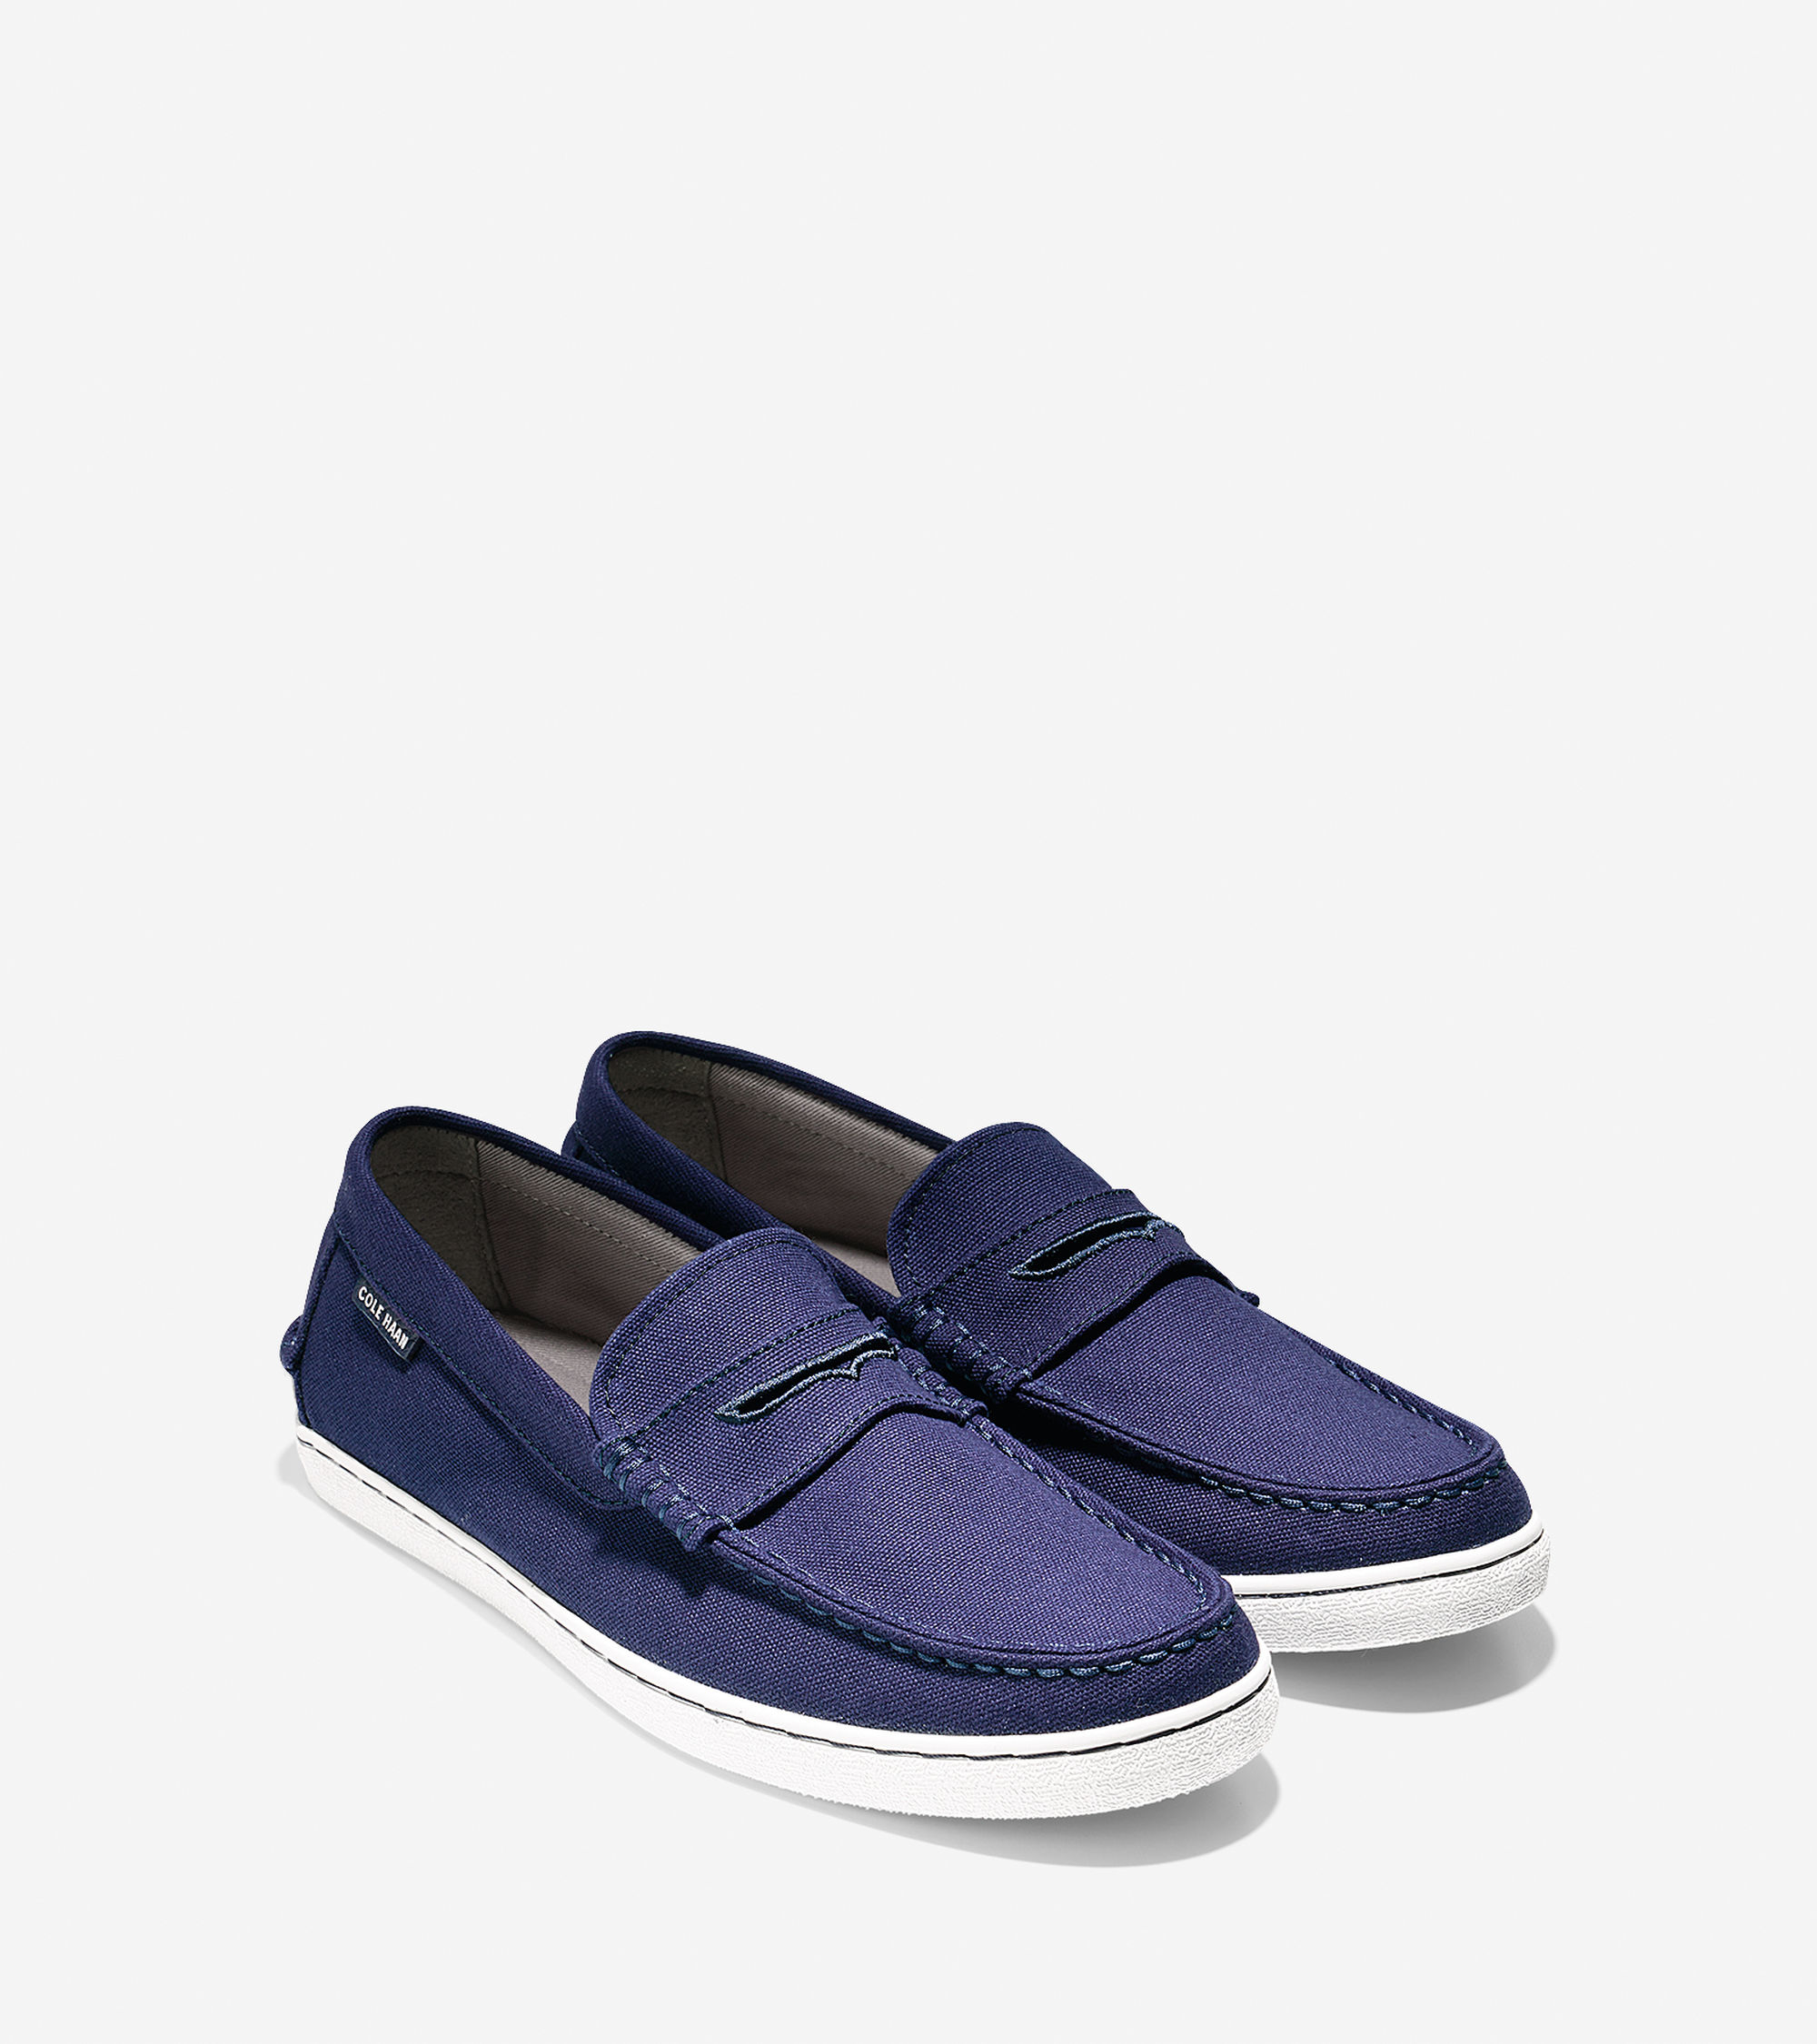 Kenneth Cole Reaction Men Loafers Shoes